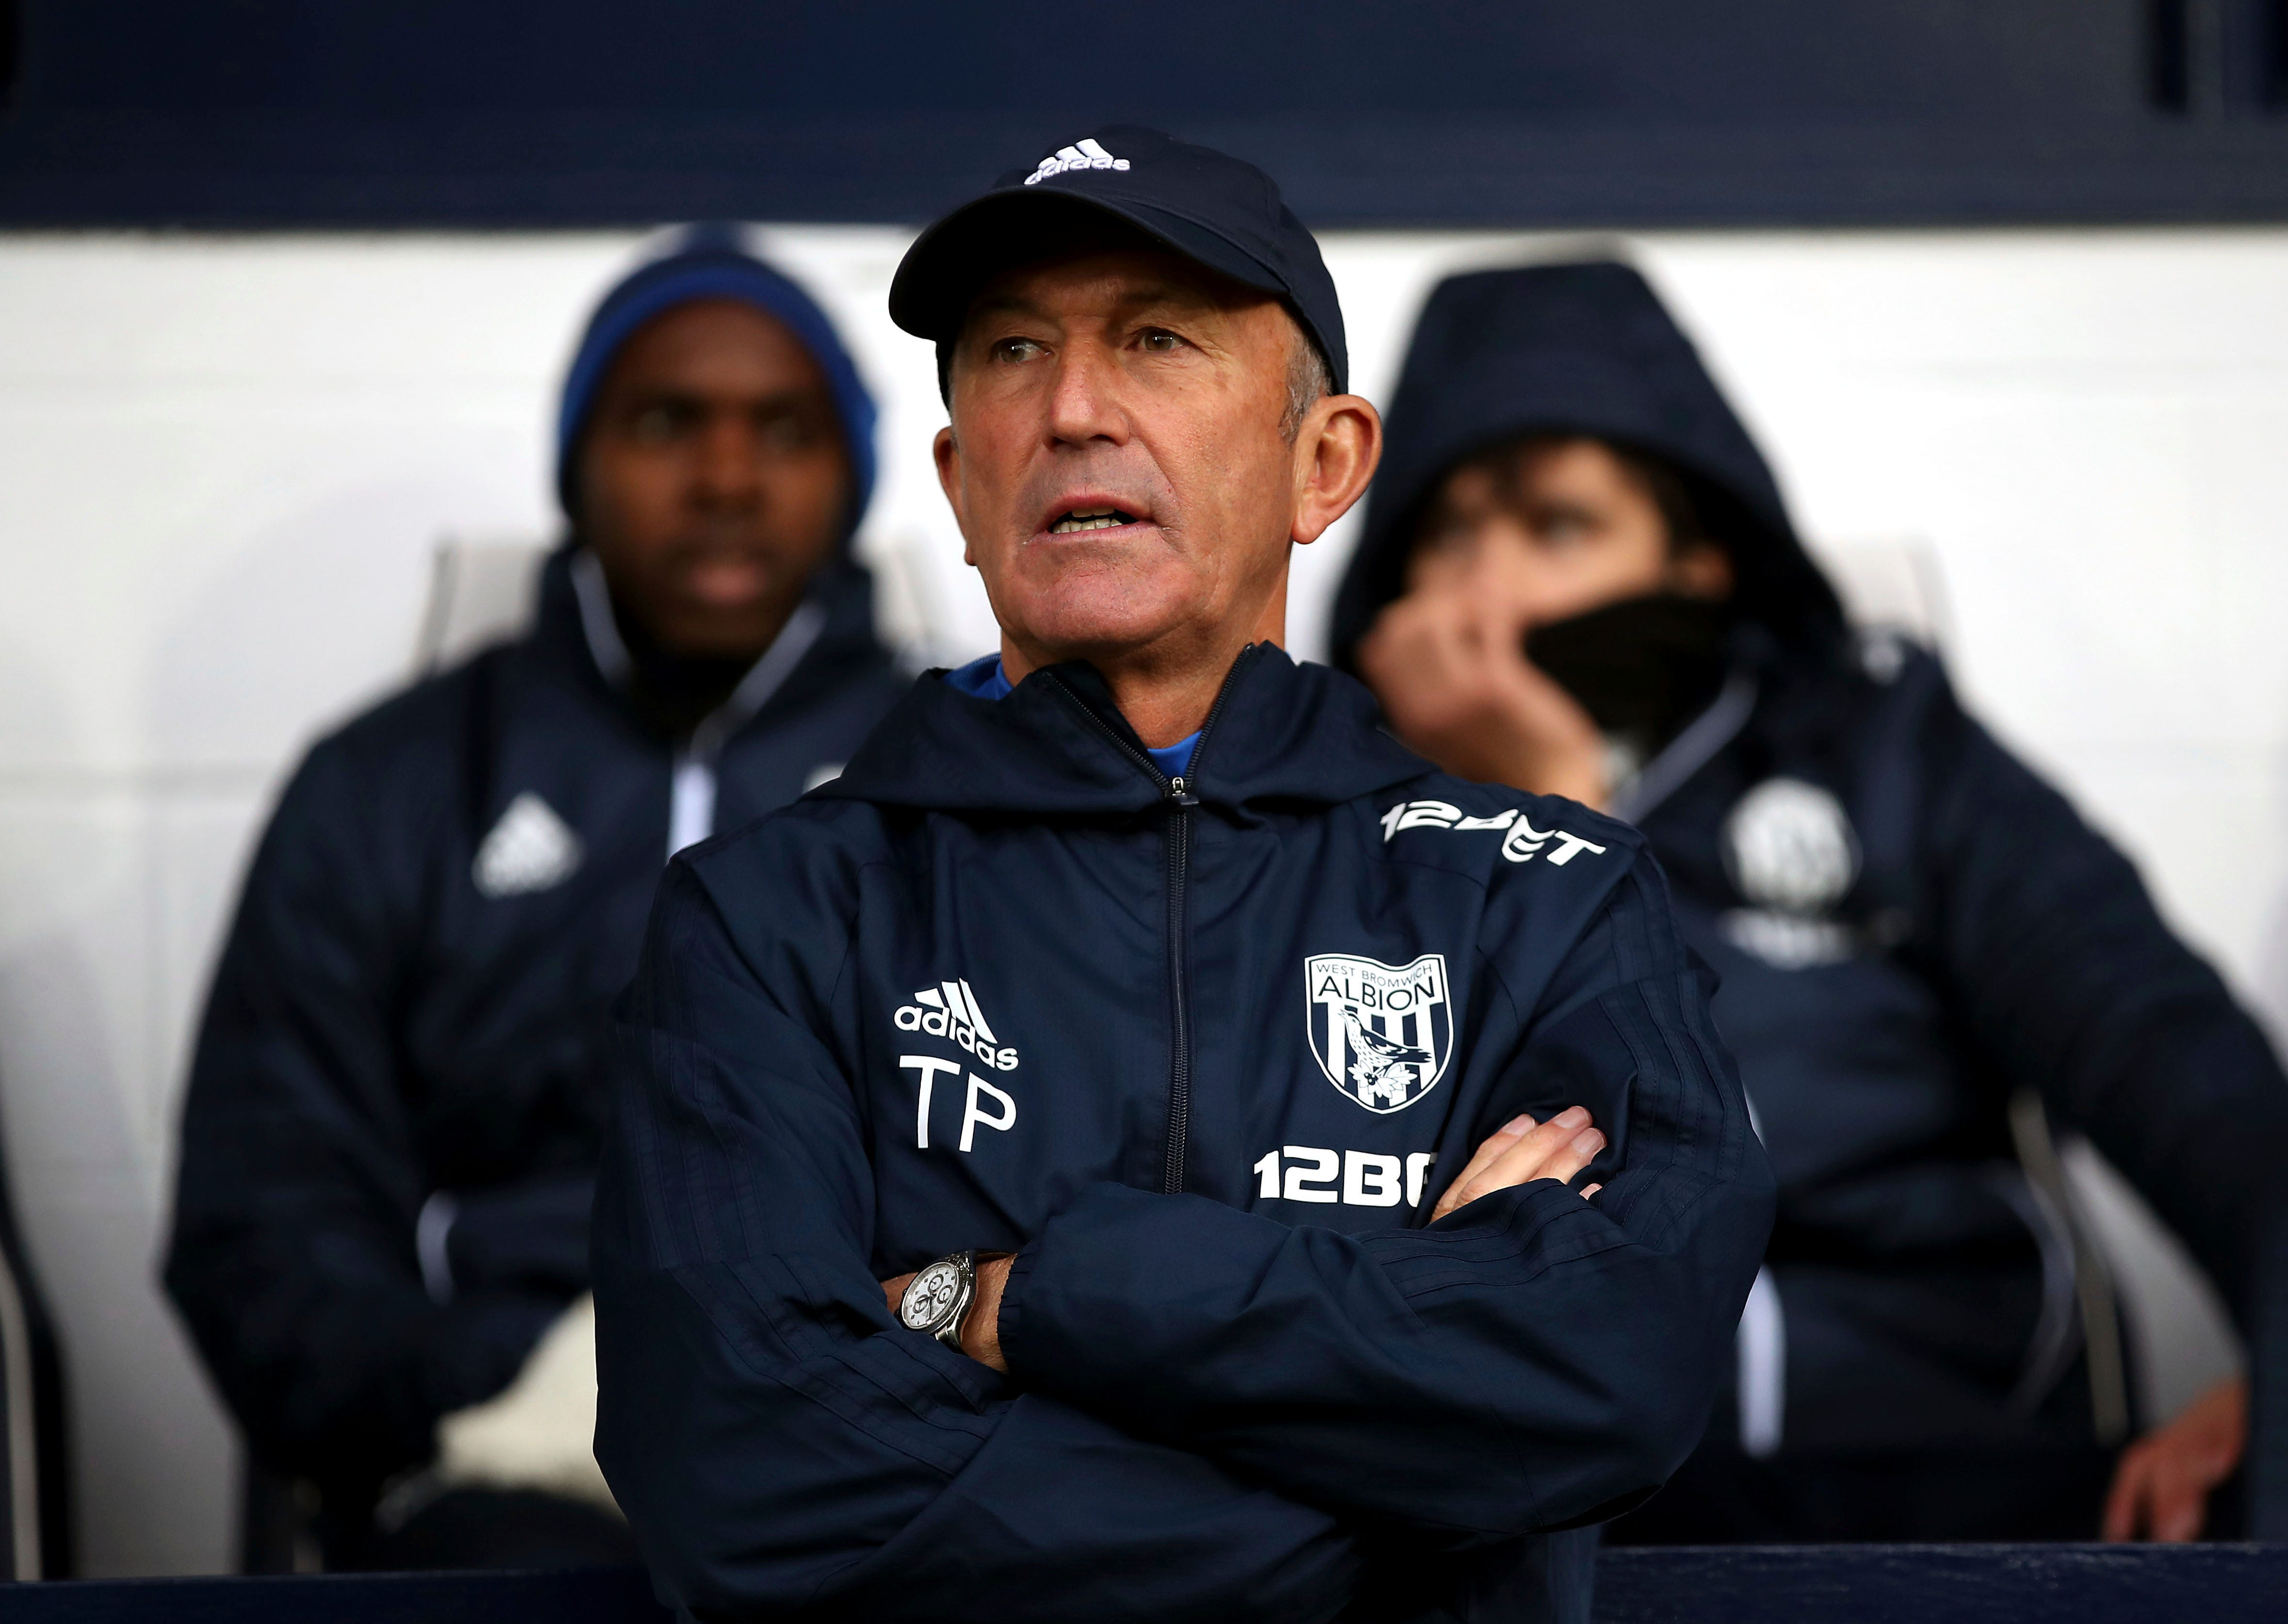 Chelsea crushes West Brom 4-0 to put Pulis job in doubt